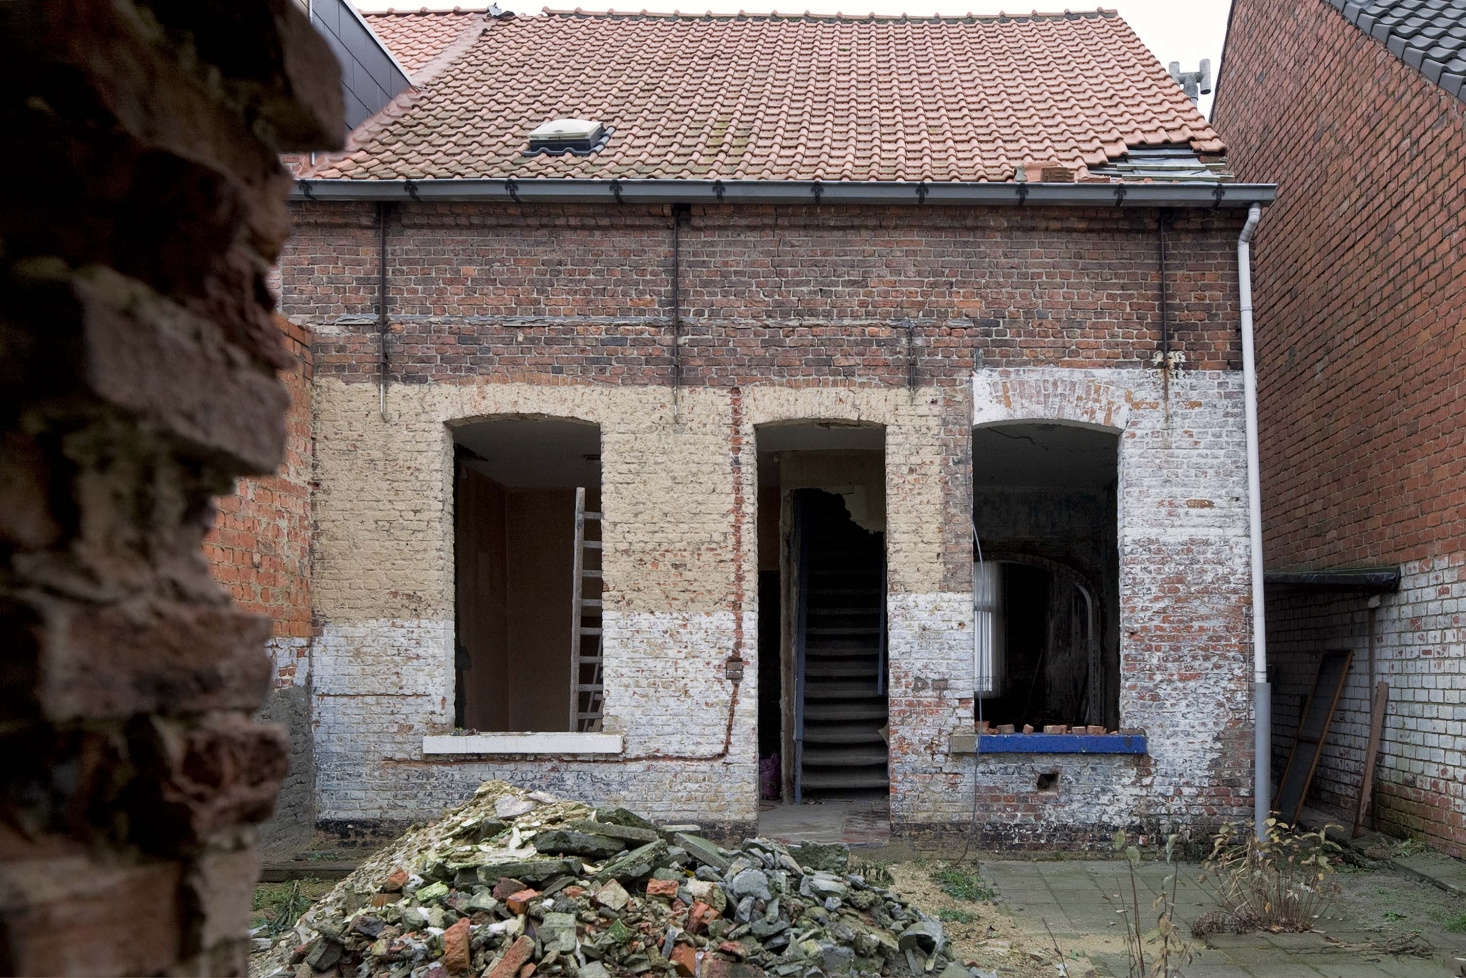 The house exterior during the renovation where the facade and roof were restored, windows and doors were replaced, and two skylights added.